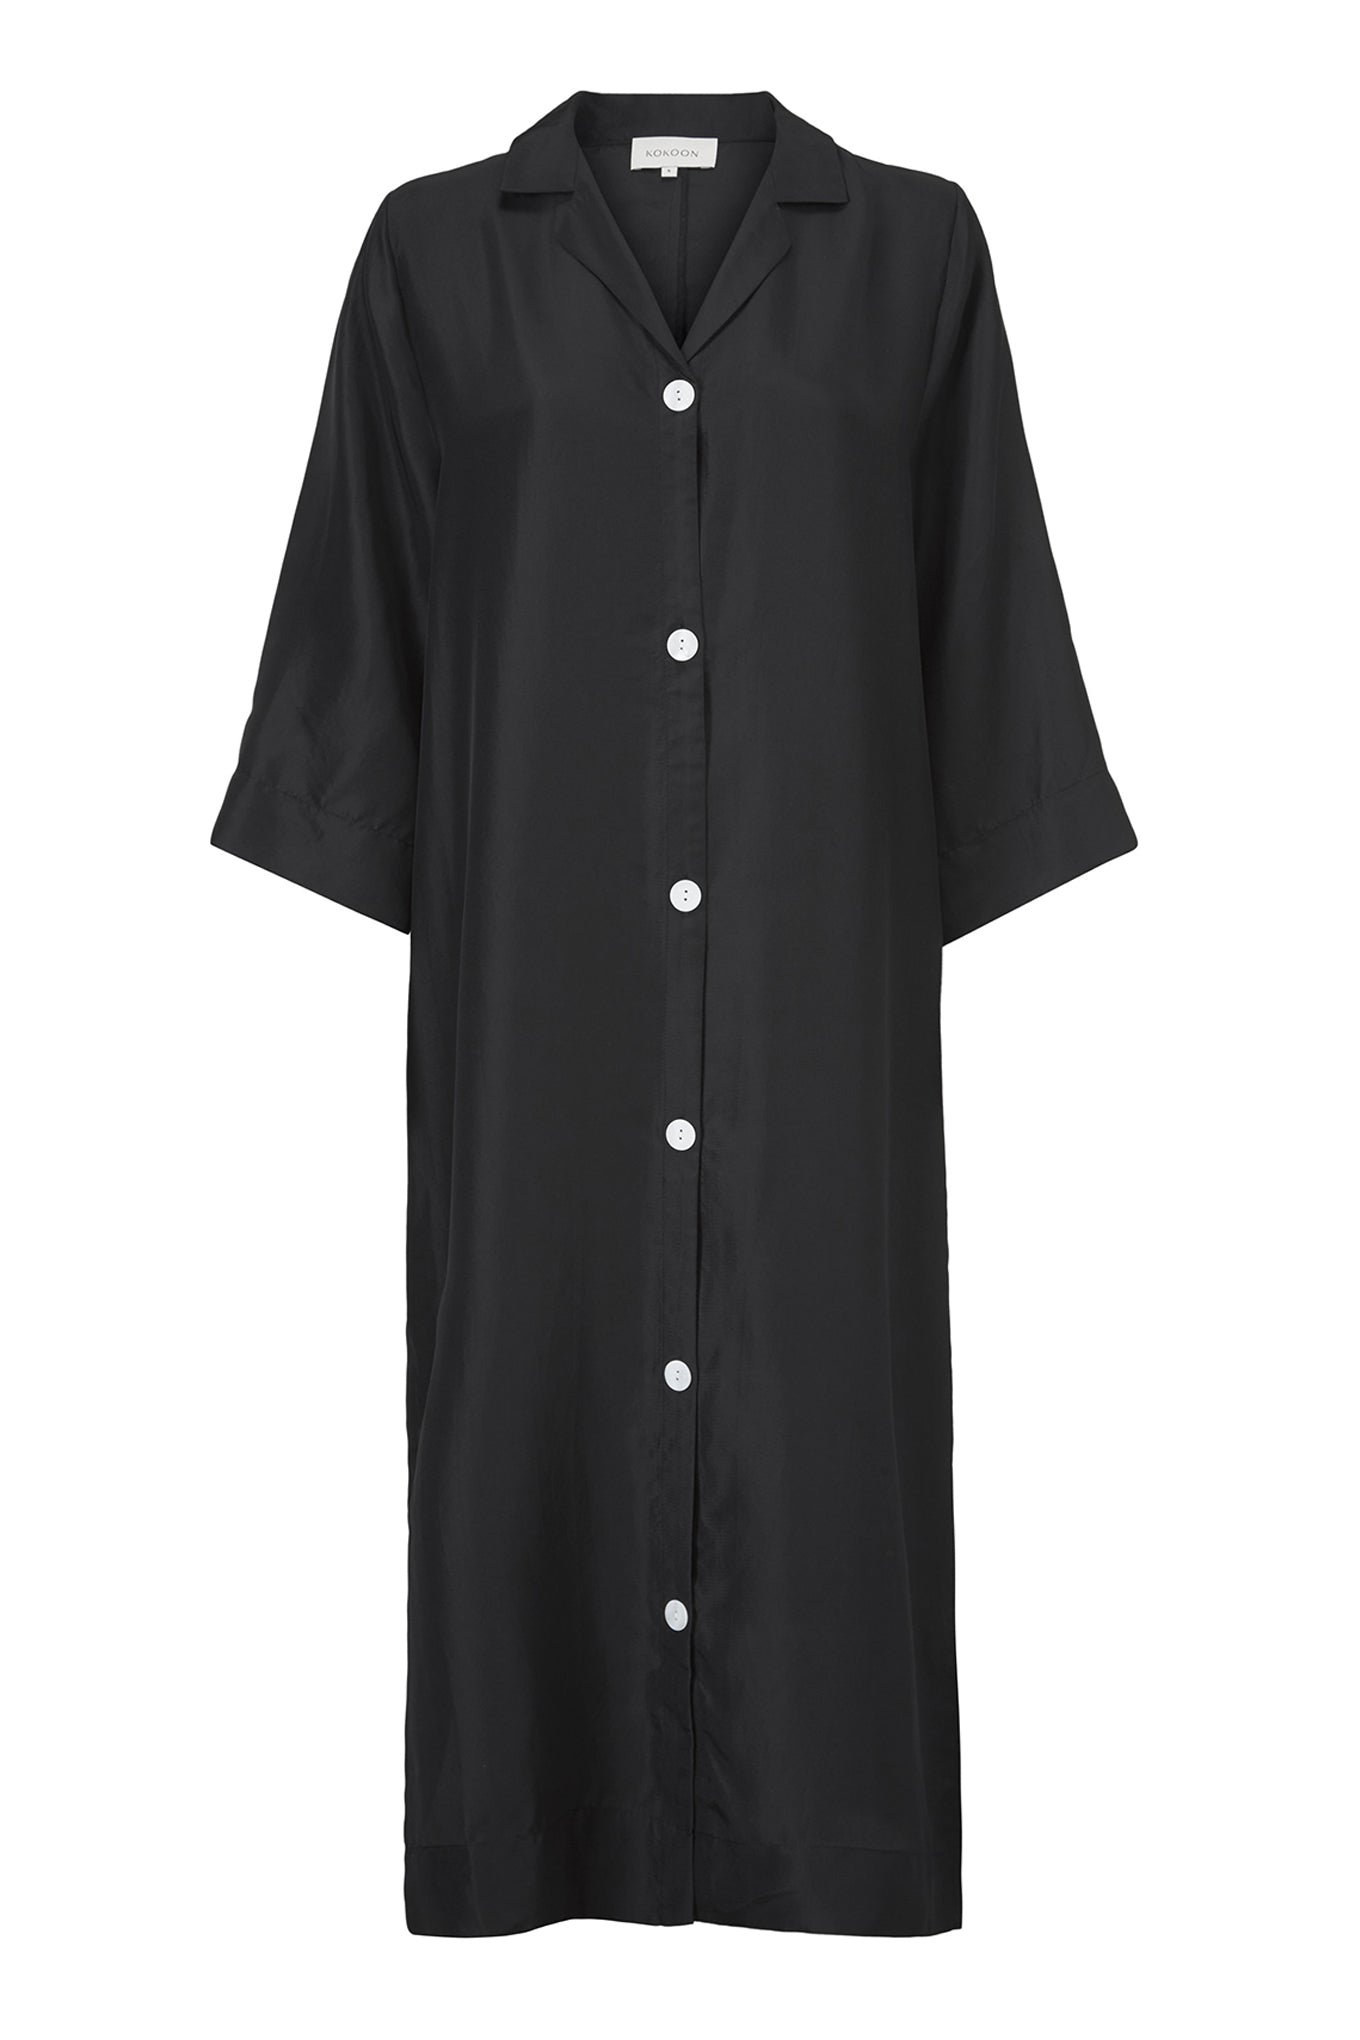 Barney Shirt Dress - Black